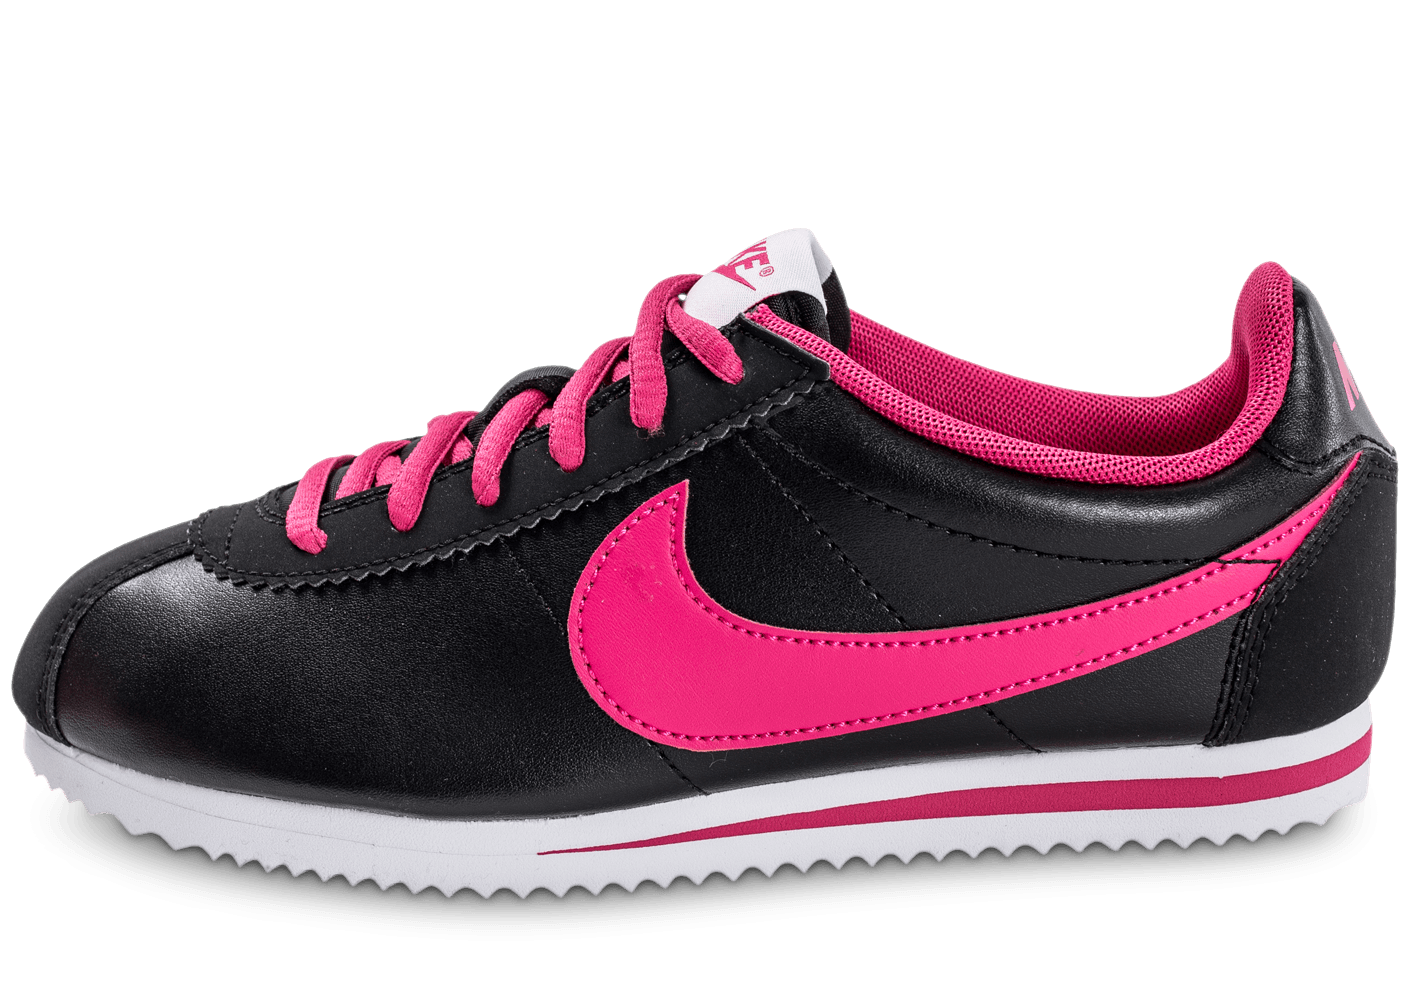 nike cortez junior cuir noire et rose chaussures black friday chausport. Black Bedroom Furniture Sets. Home Design Ideas